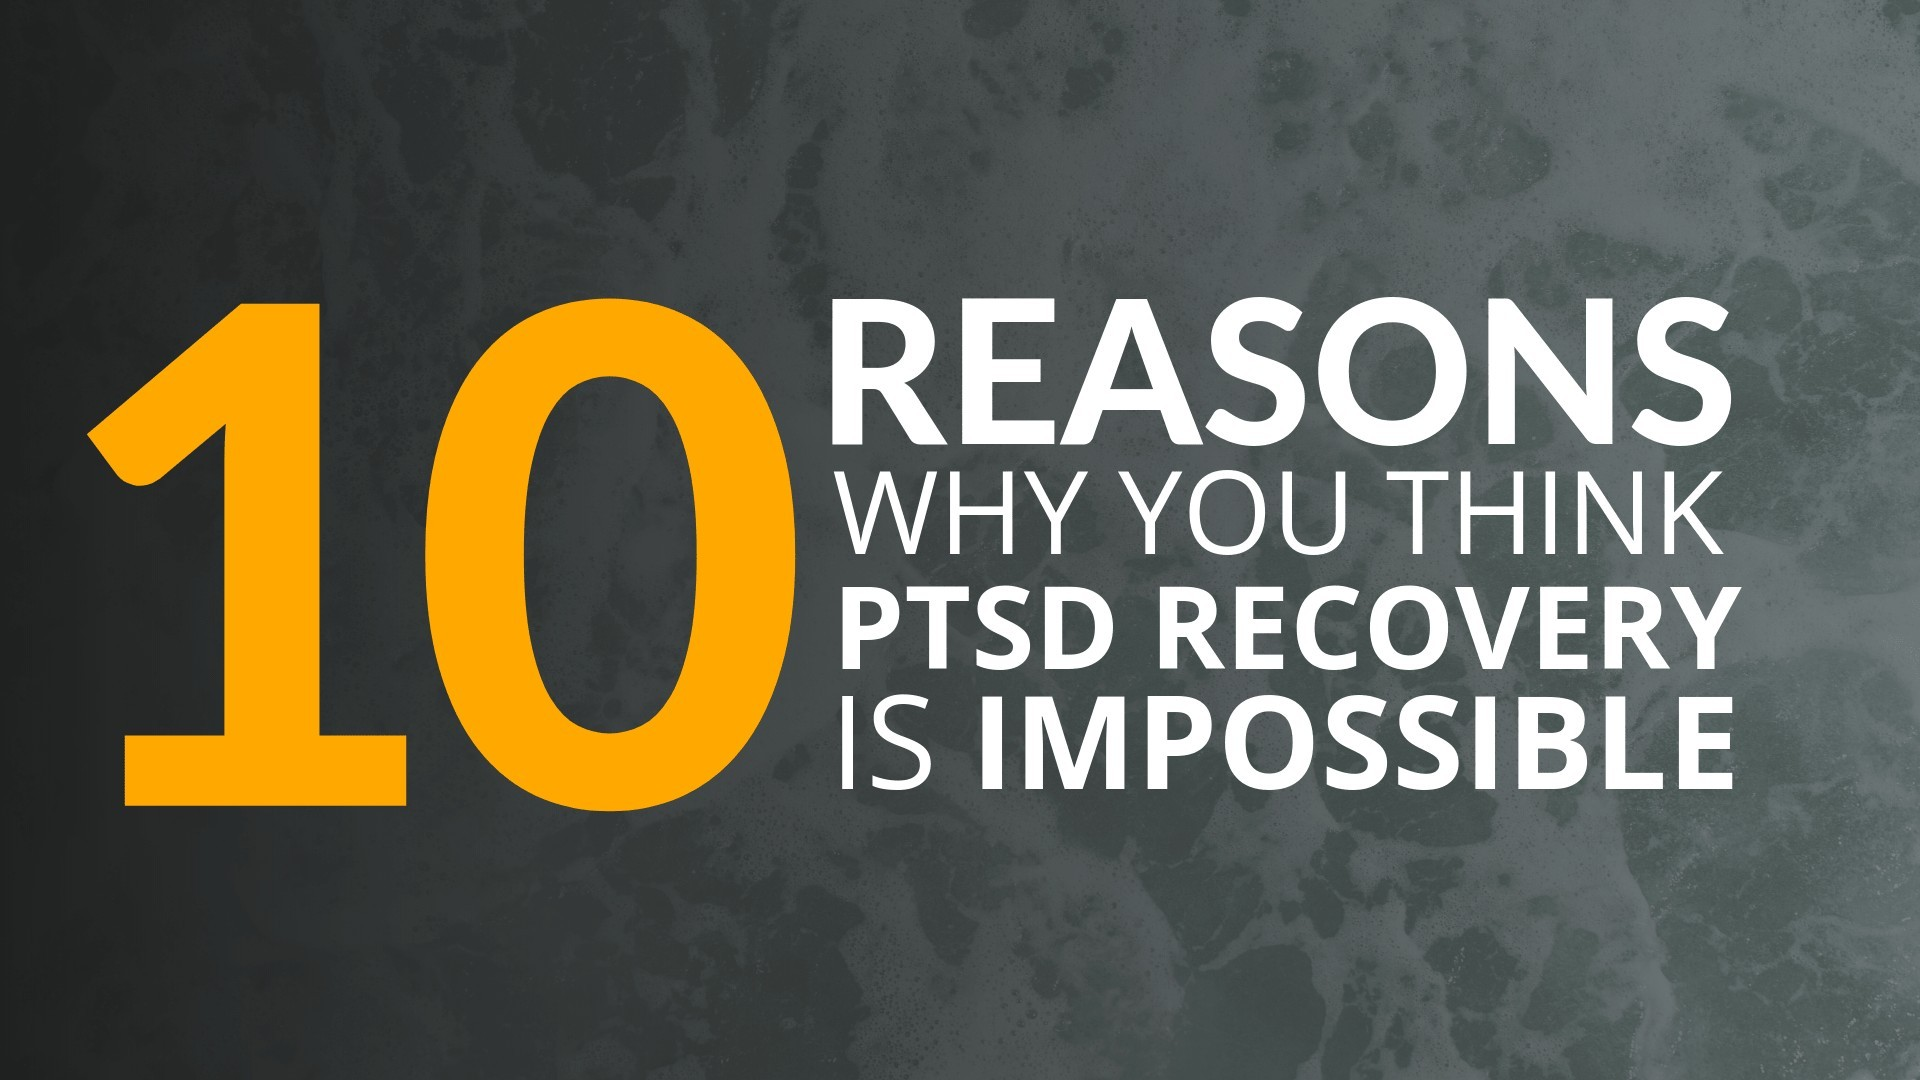 10 Undeniable Reasons Why You Think PTSD Recovery Is Impossible